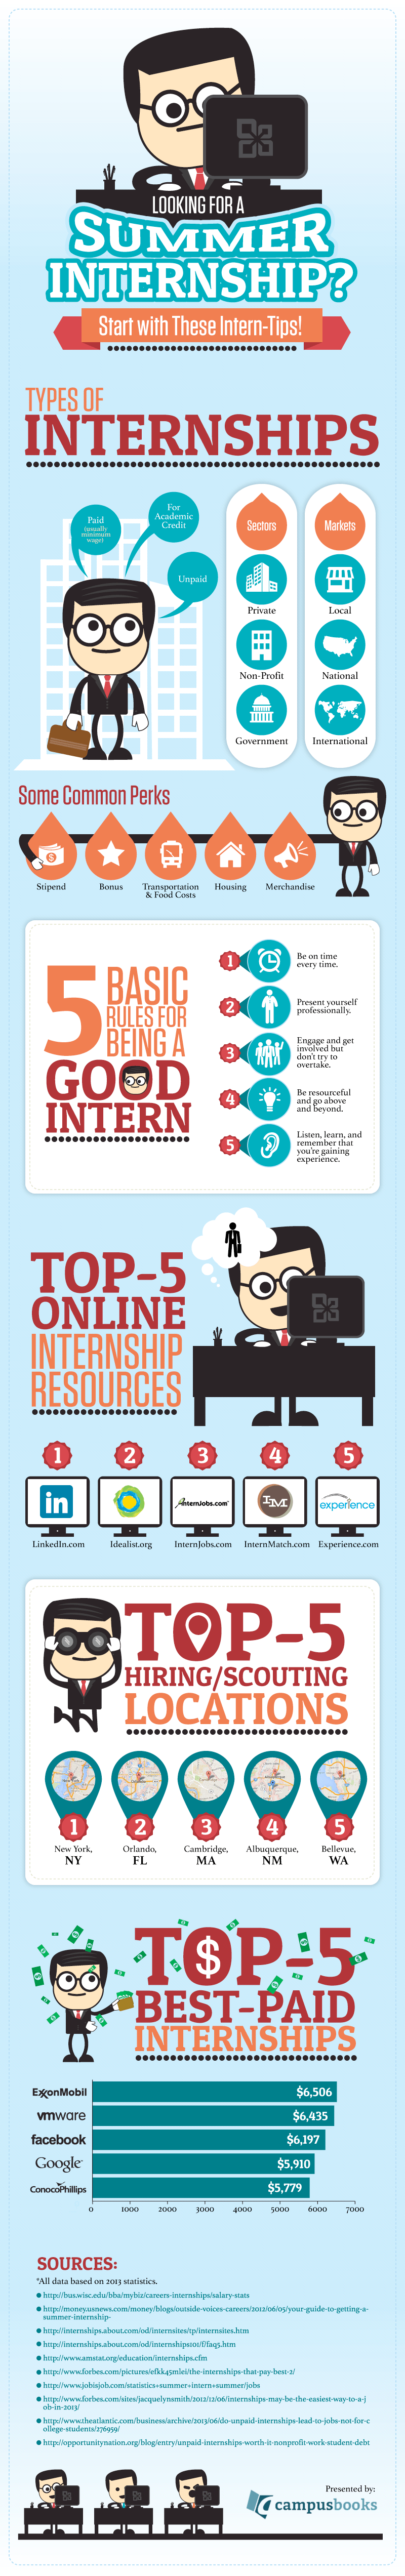 A-Students-Guide-To-Summer-Internships-Infographic